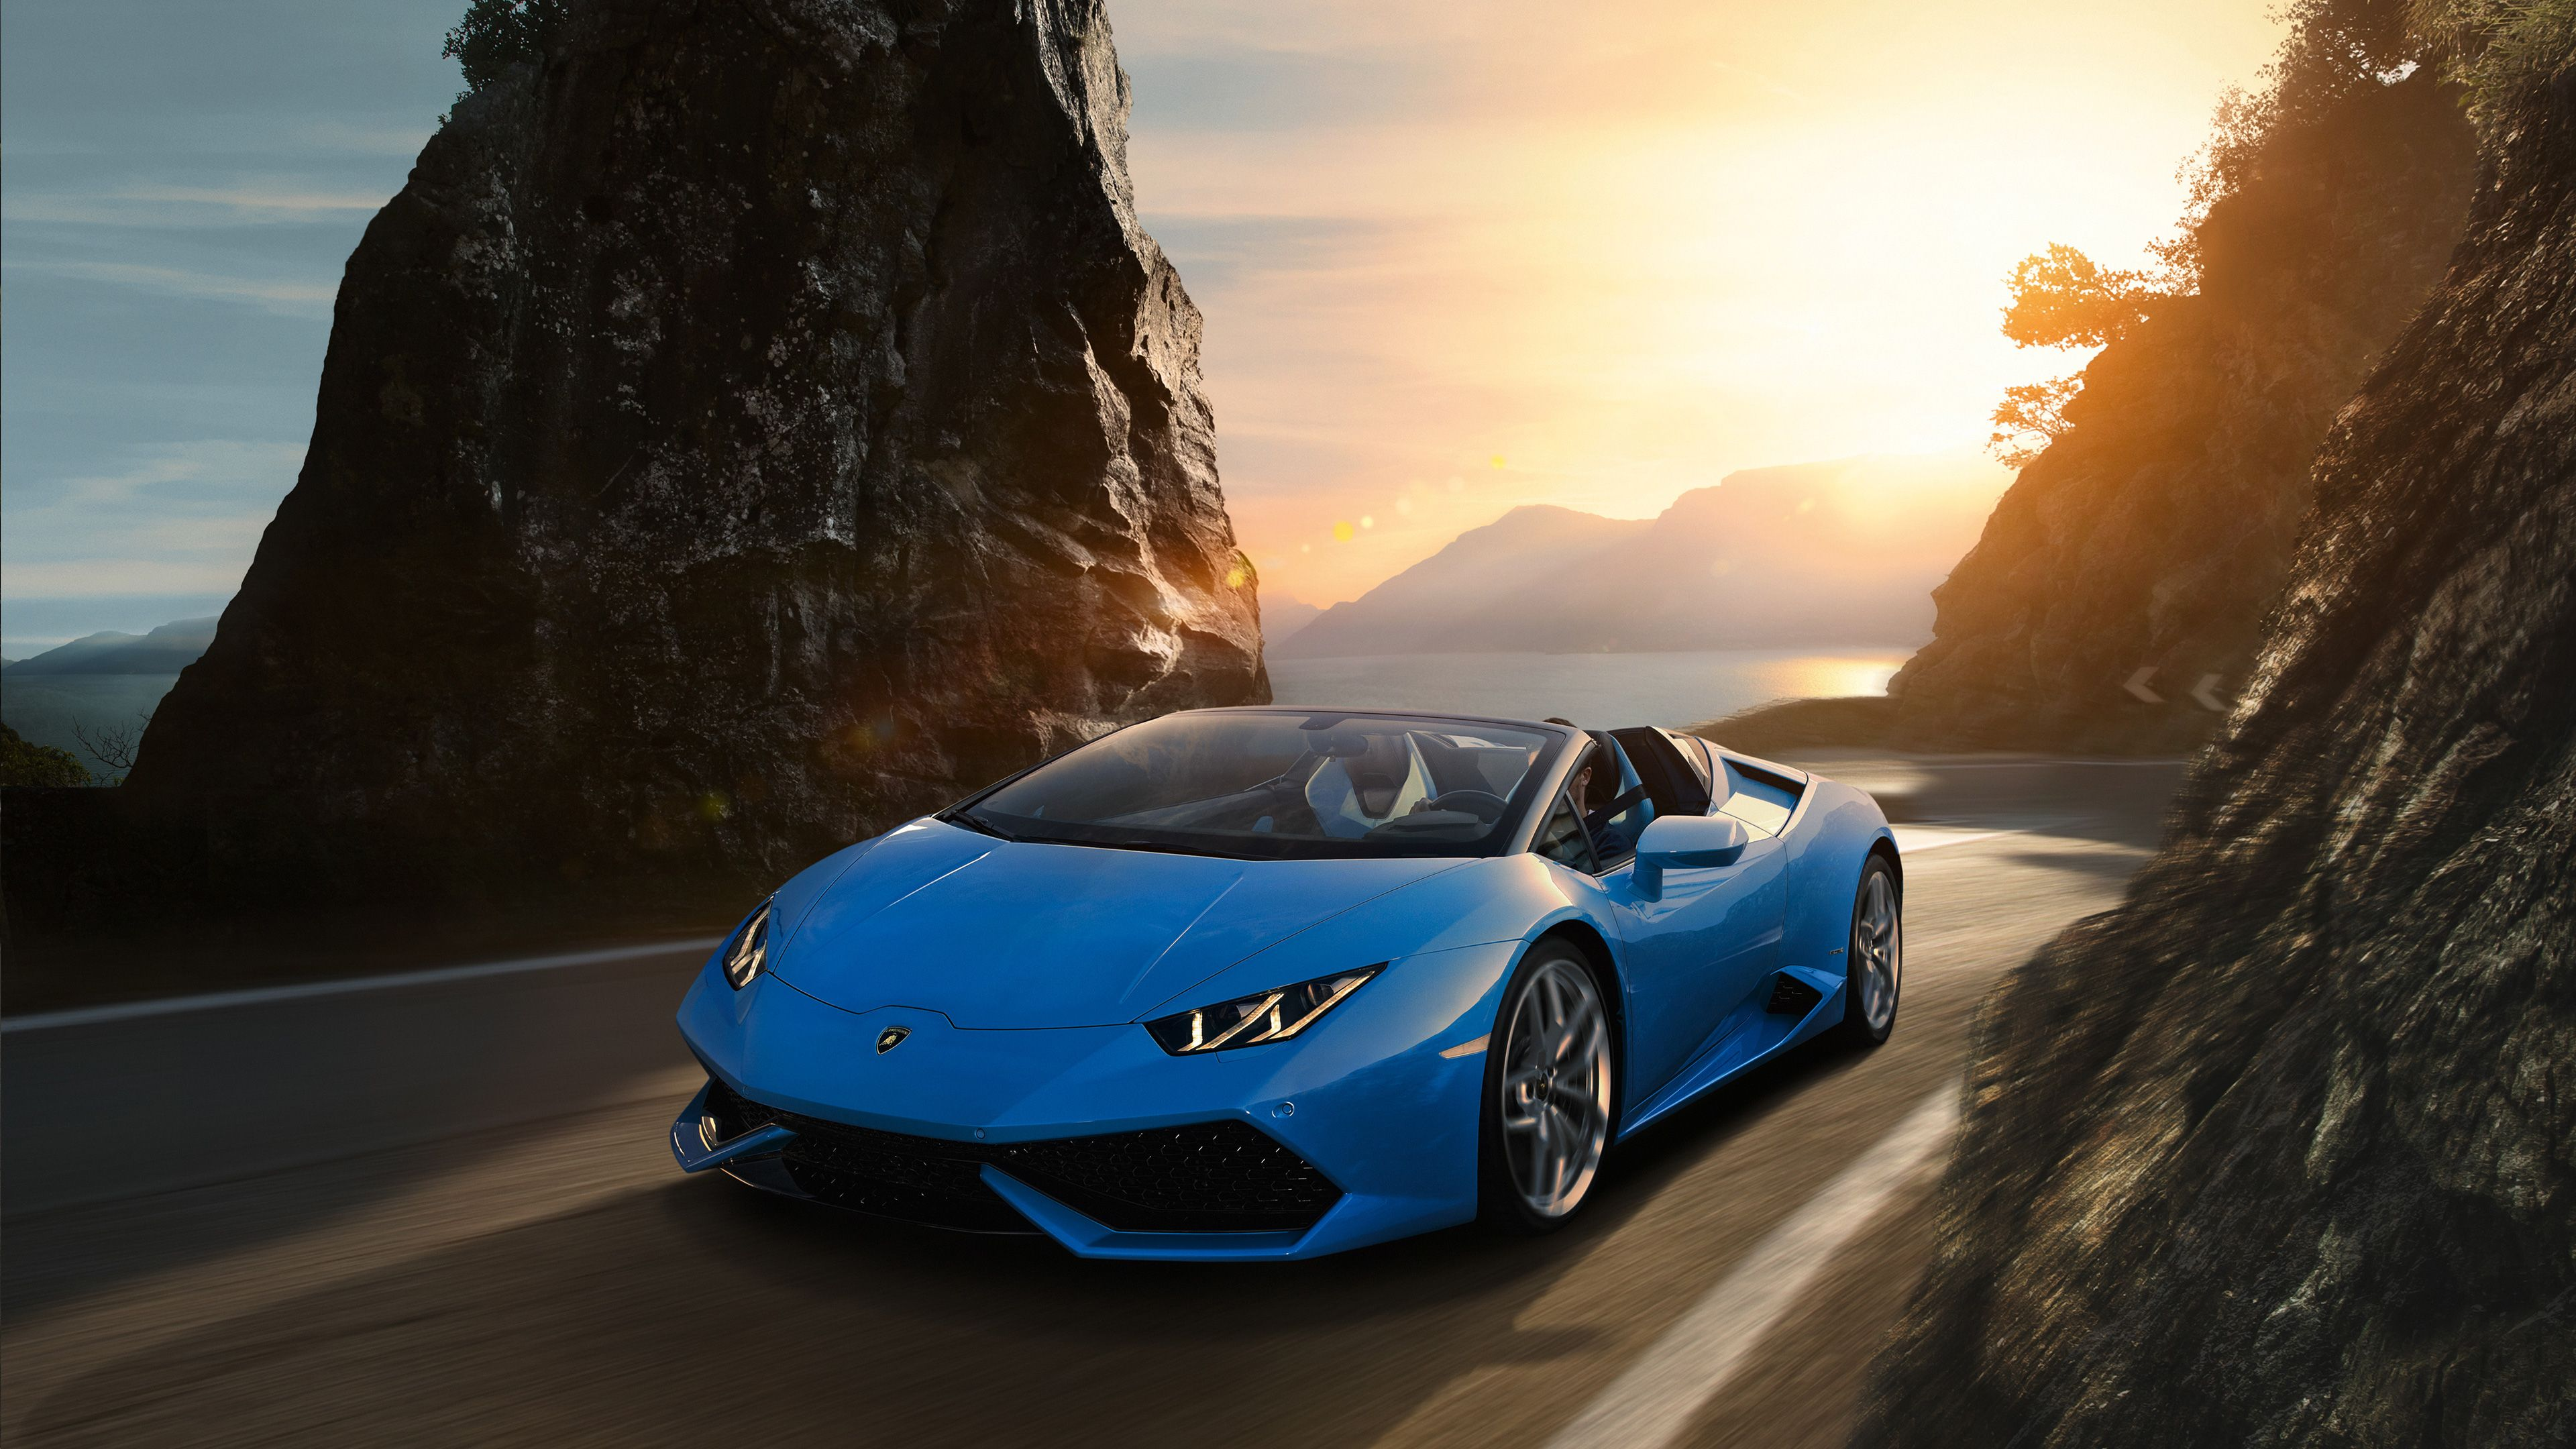 Open cars wallpapers 4k apk using the emulator or drag and drop the apk file into the emulator to install the app. Car Extreme Car 4k Wallpaper For Pc